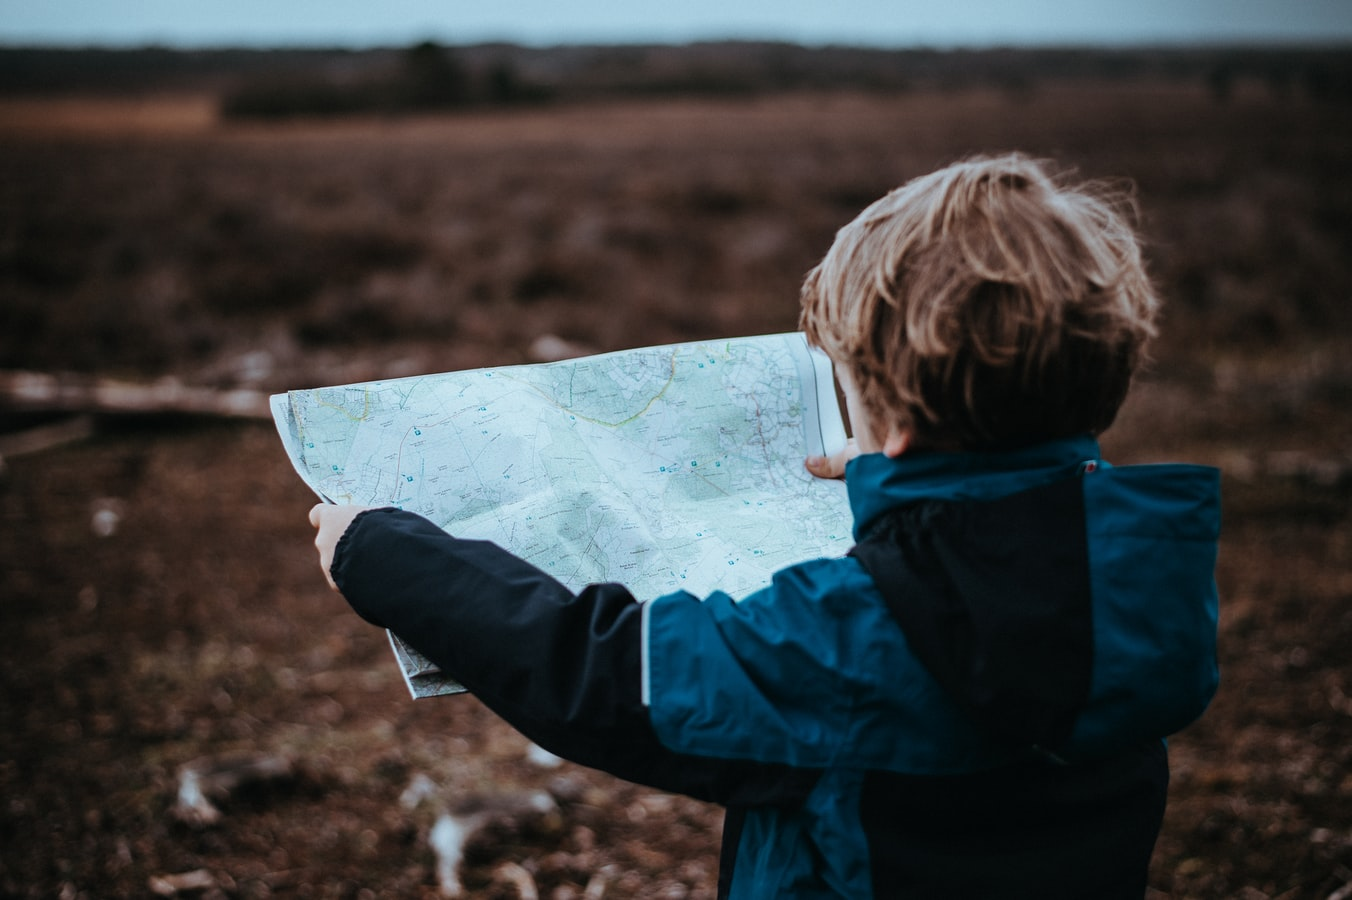 A young child looking at a map